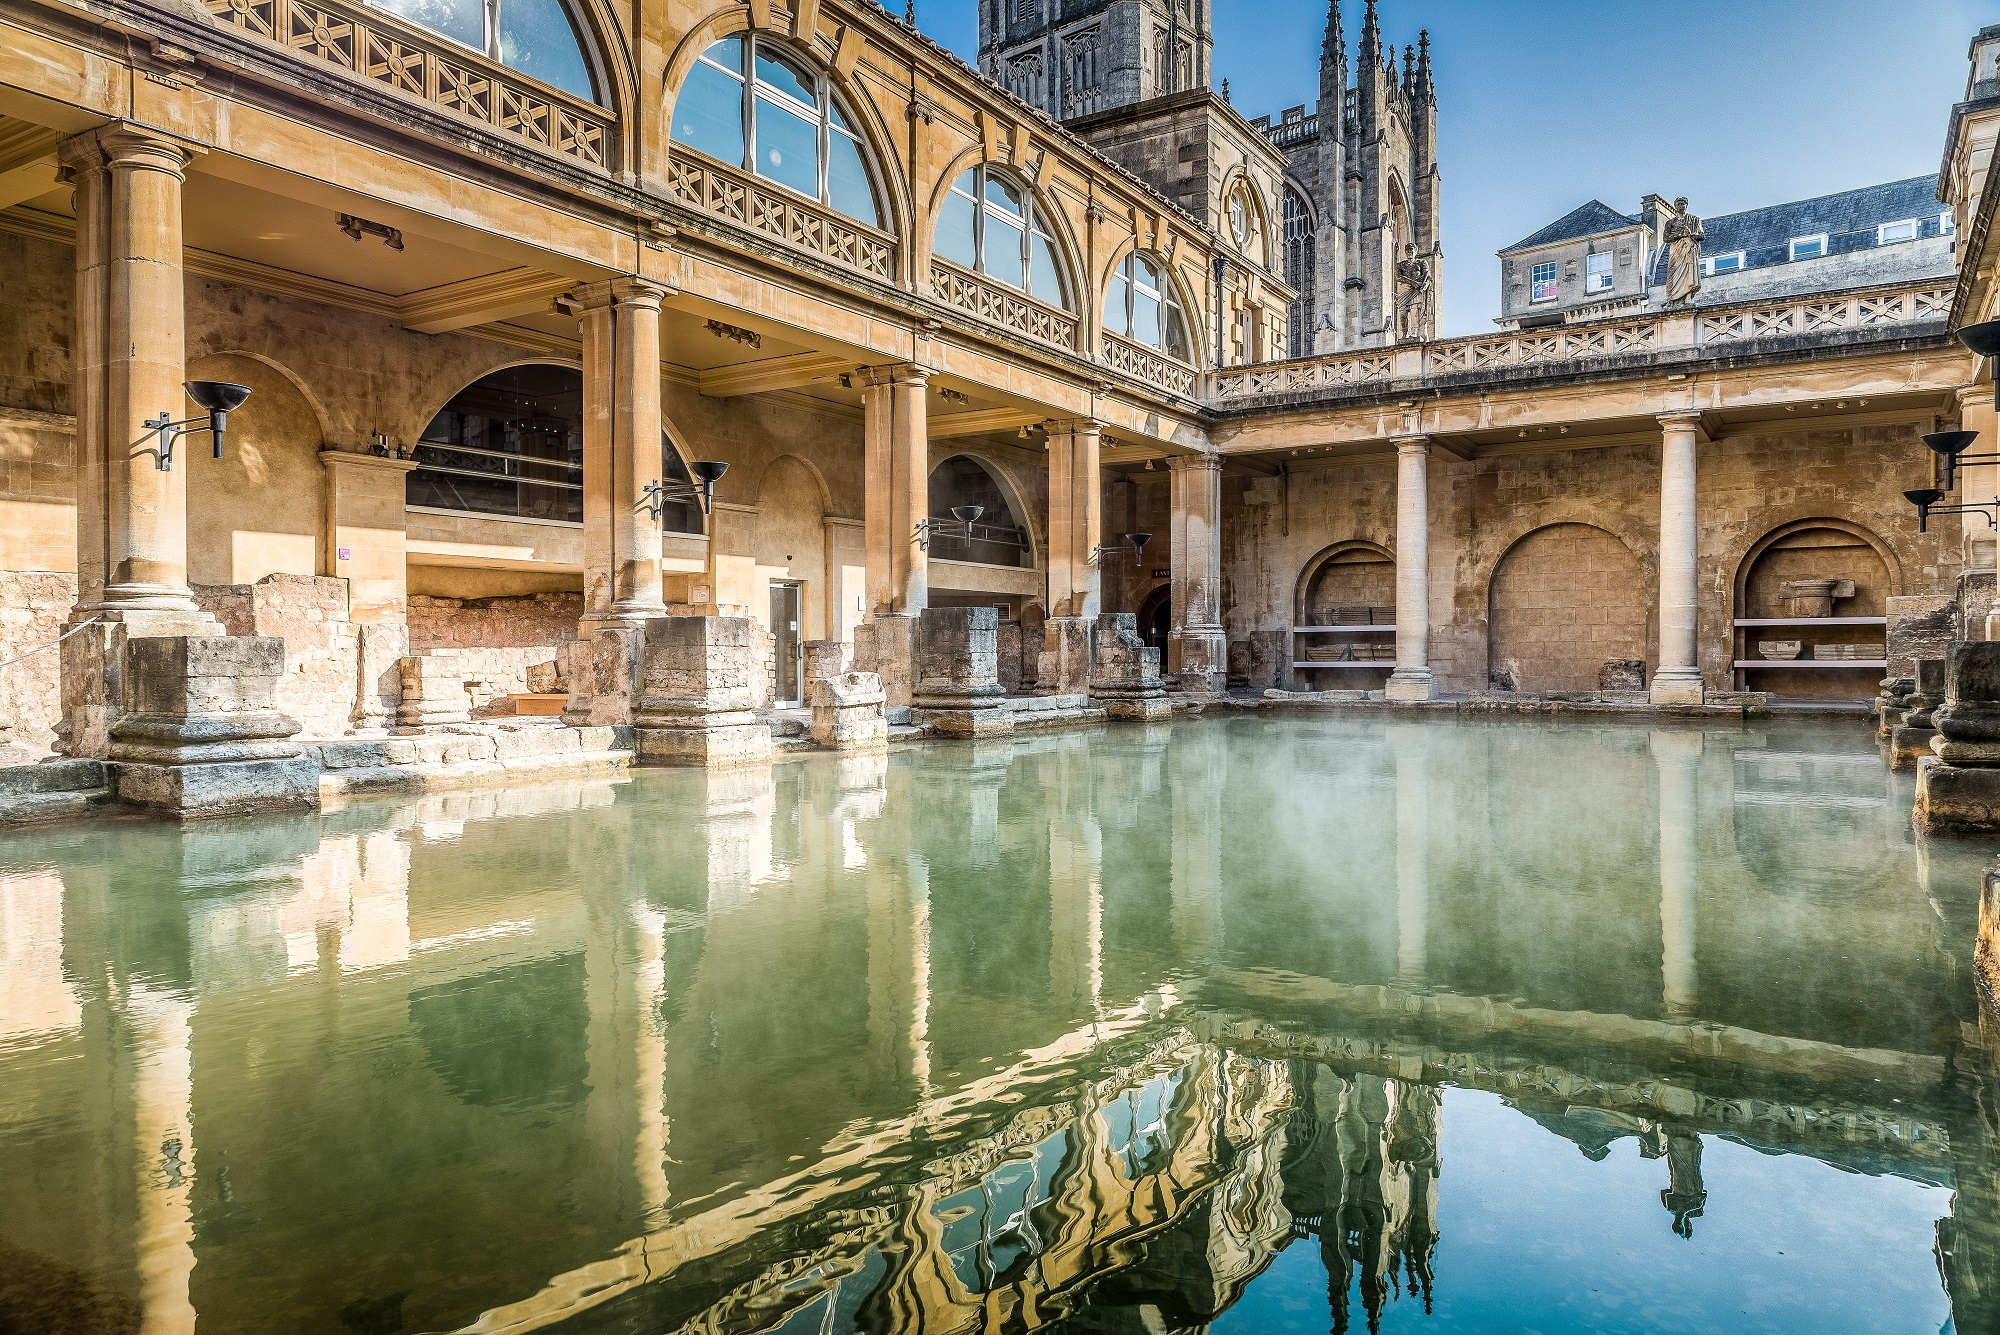 Bath unwrapped: Where to stay, what to do and what to eat in one of Britain's most iconic and historic cities